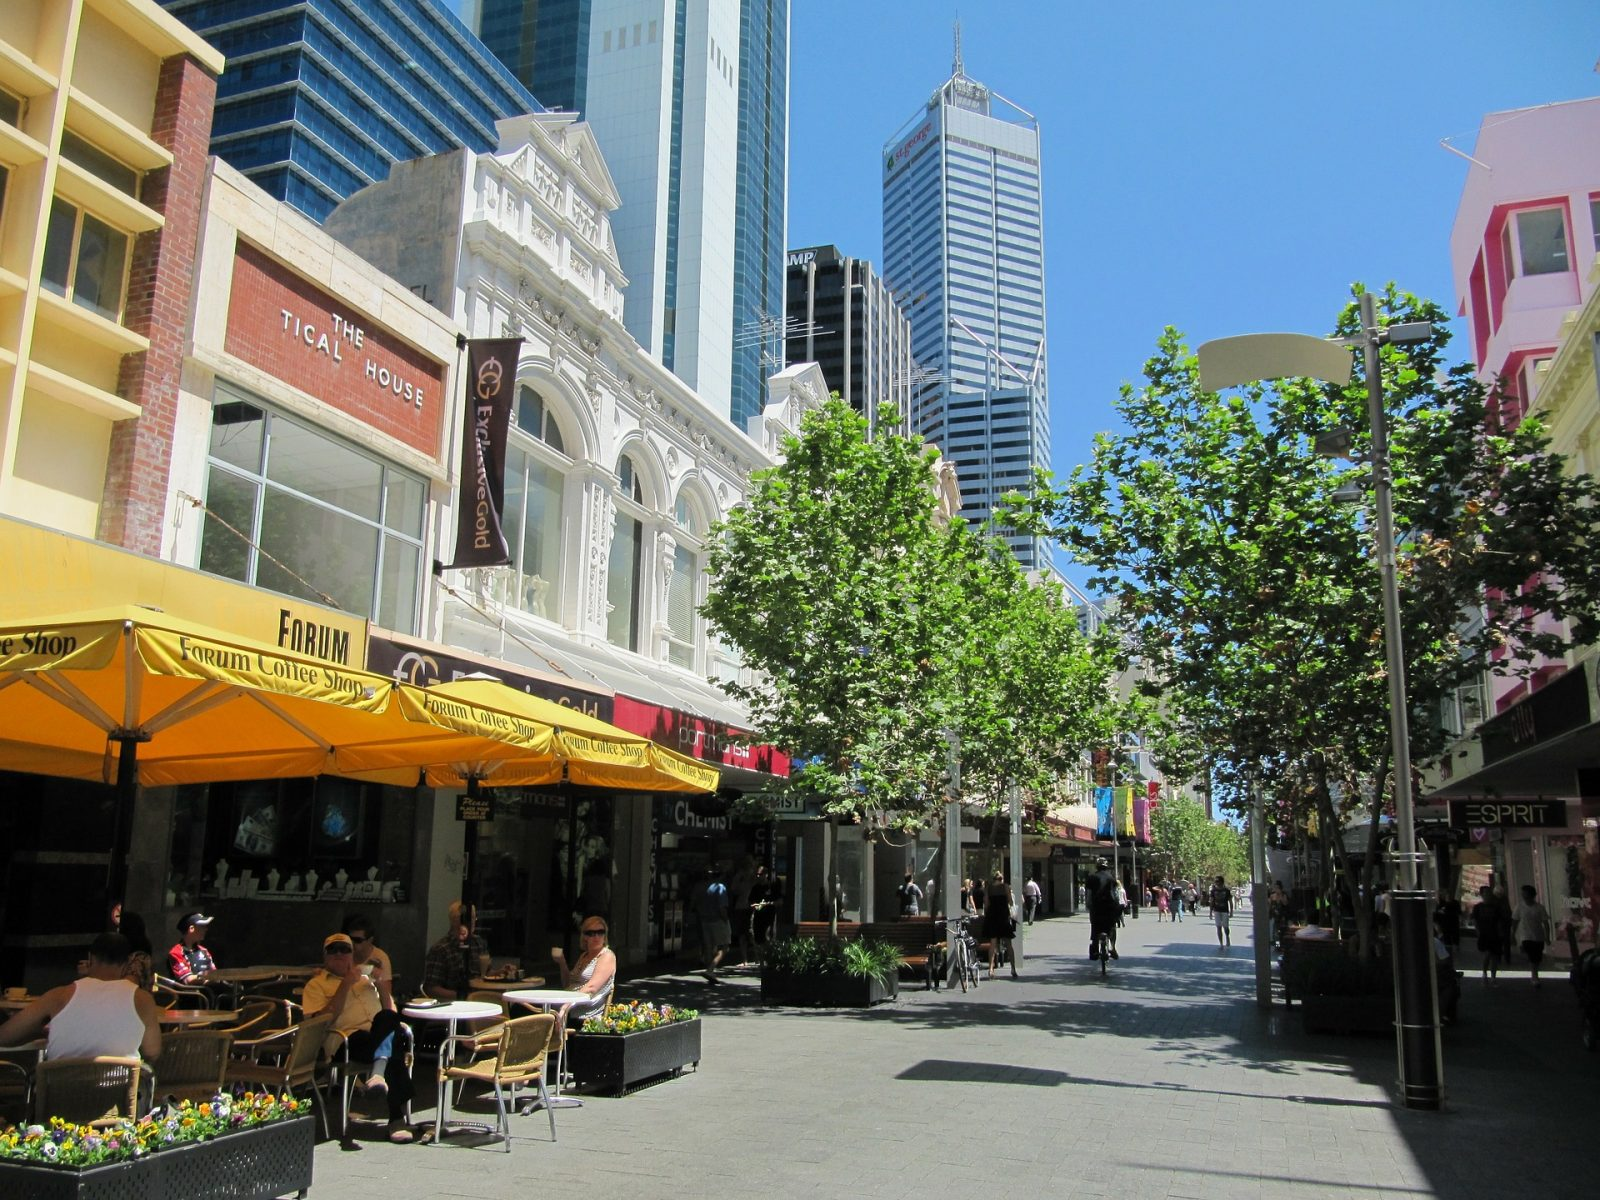 Western Australia Itinerary: The streets of Perth